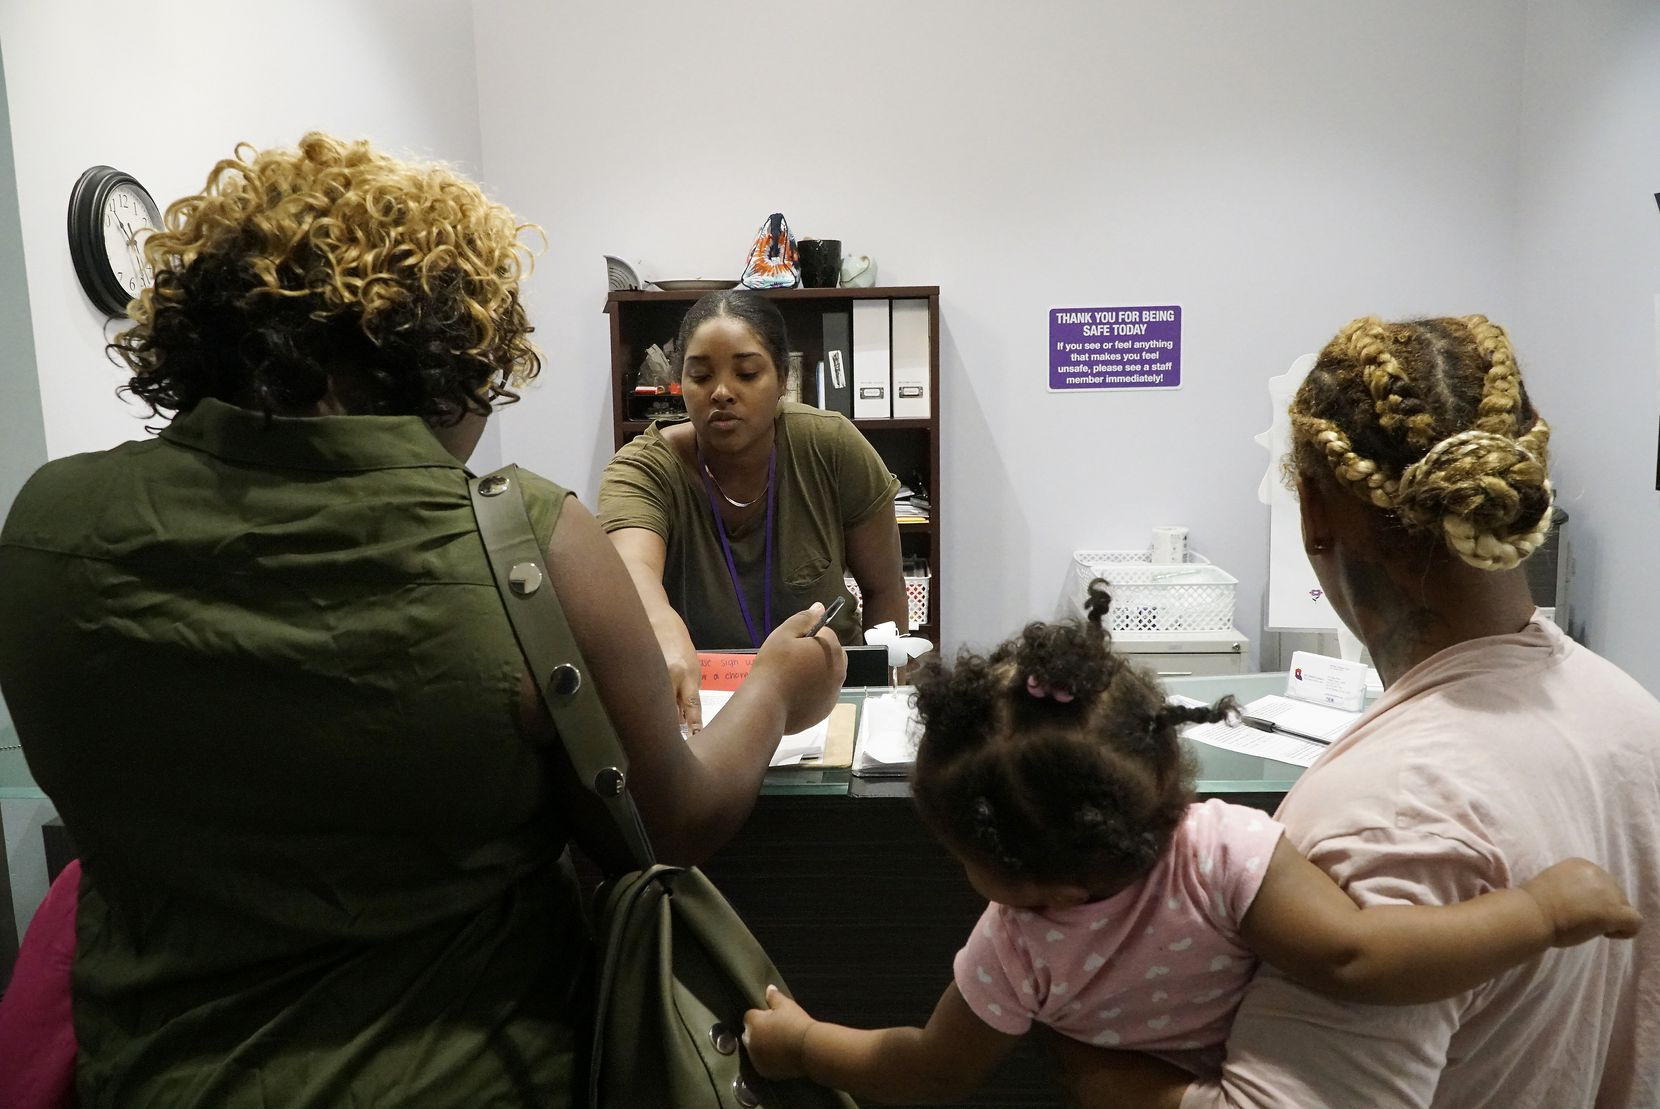 Resident Advocate Kari Webb (center) assists clients at the women's shelter at Family Place in Dallas, Texas on Tuesday, November 26, 2019. Uber just awarded the organization a $32K ride share and $8K cash grant.